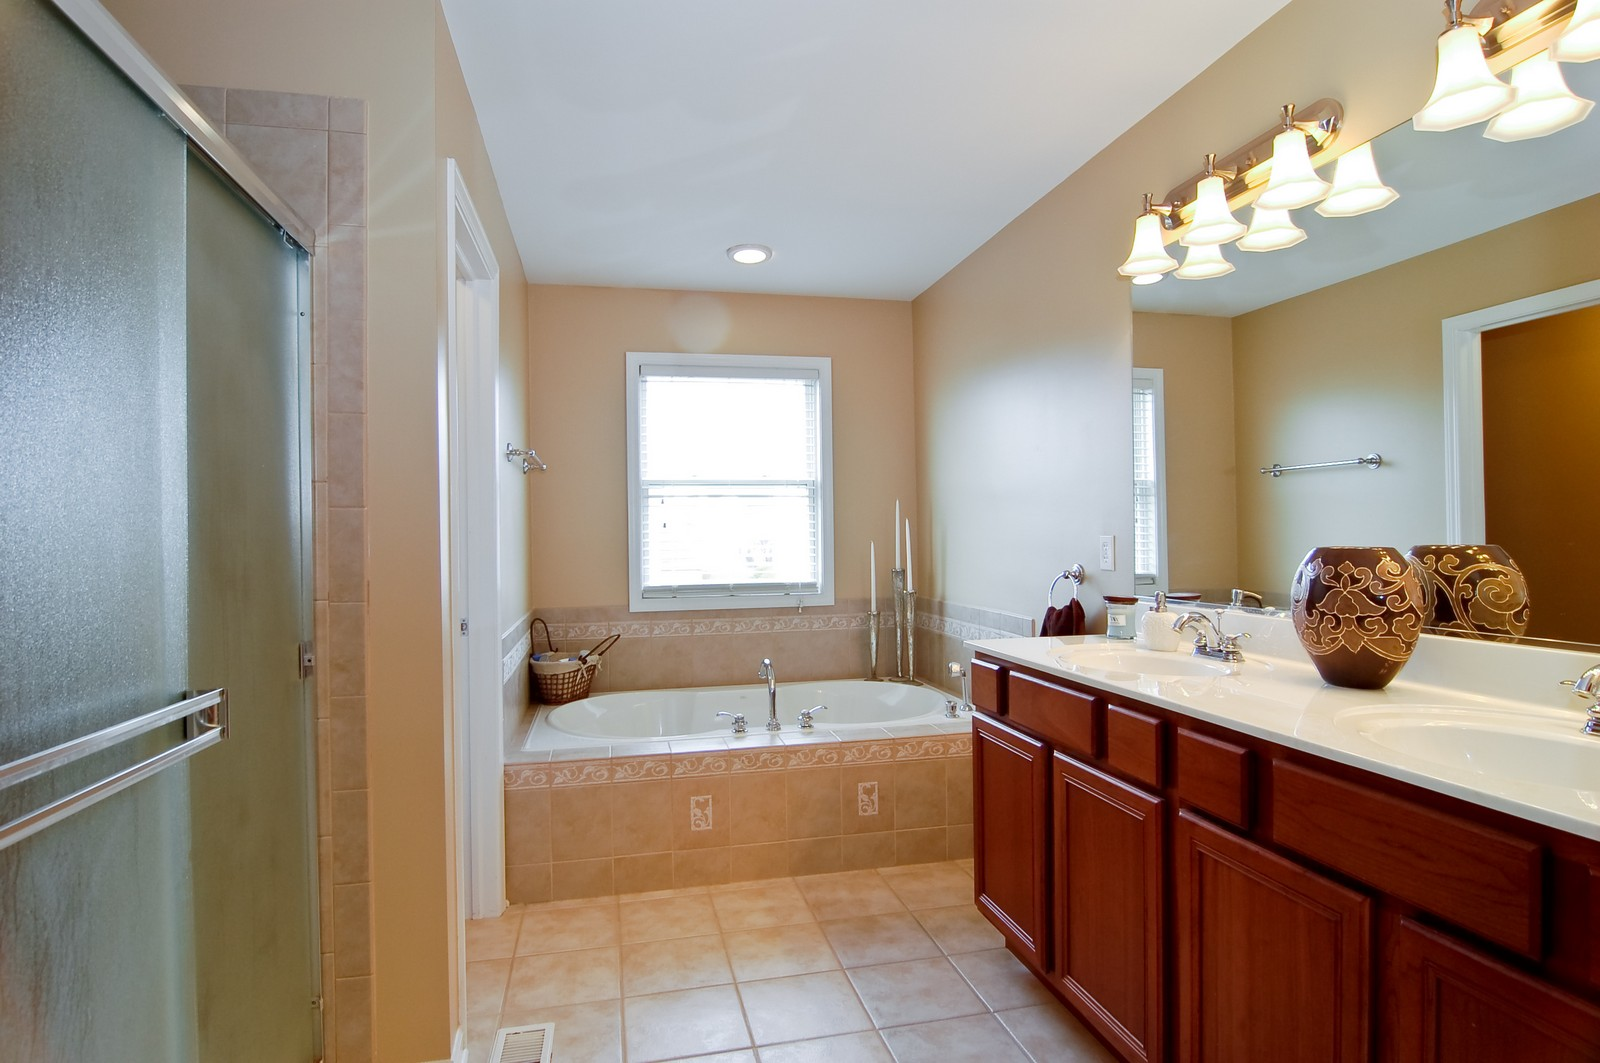 Real Estate Photography - 0S580 Preston Cir, Geneva, IL, 60134 - Master Bathroom